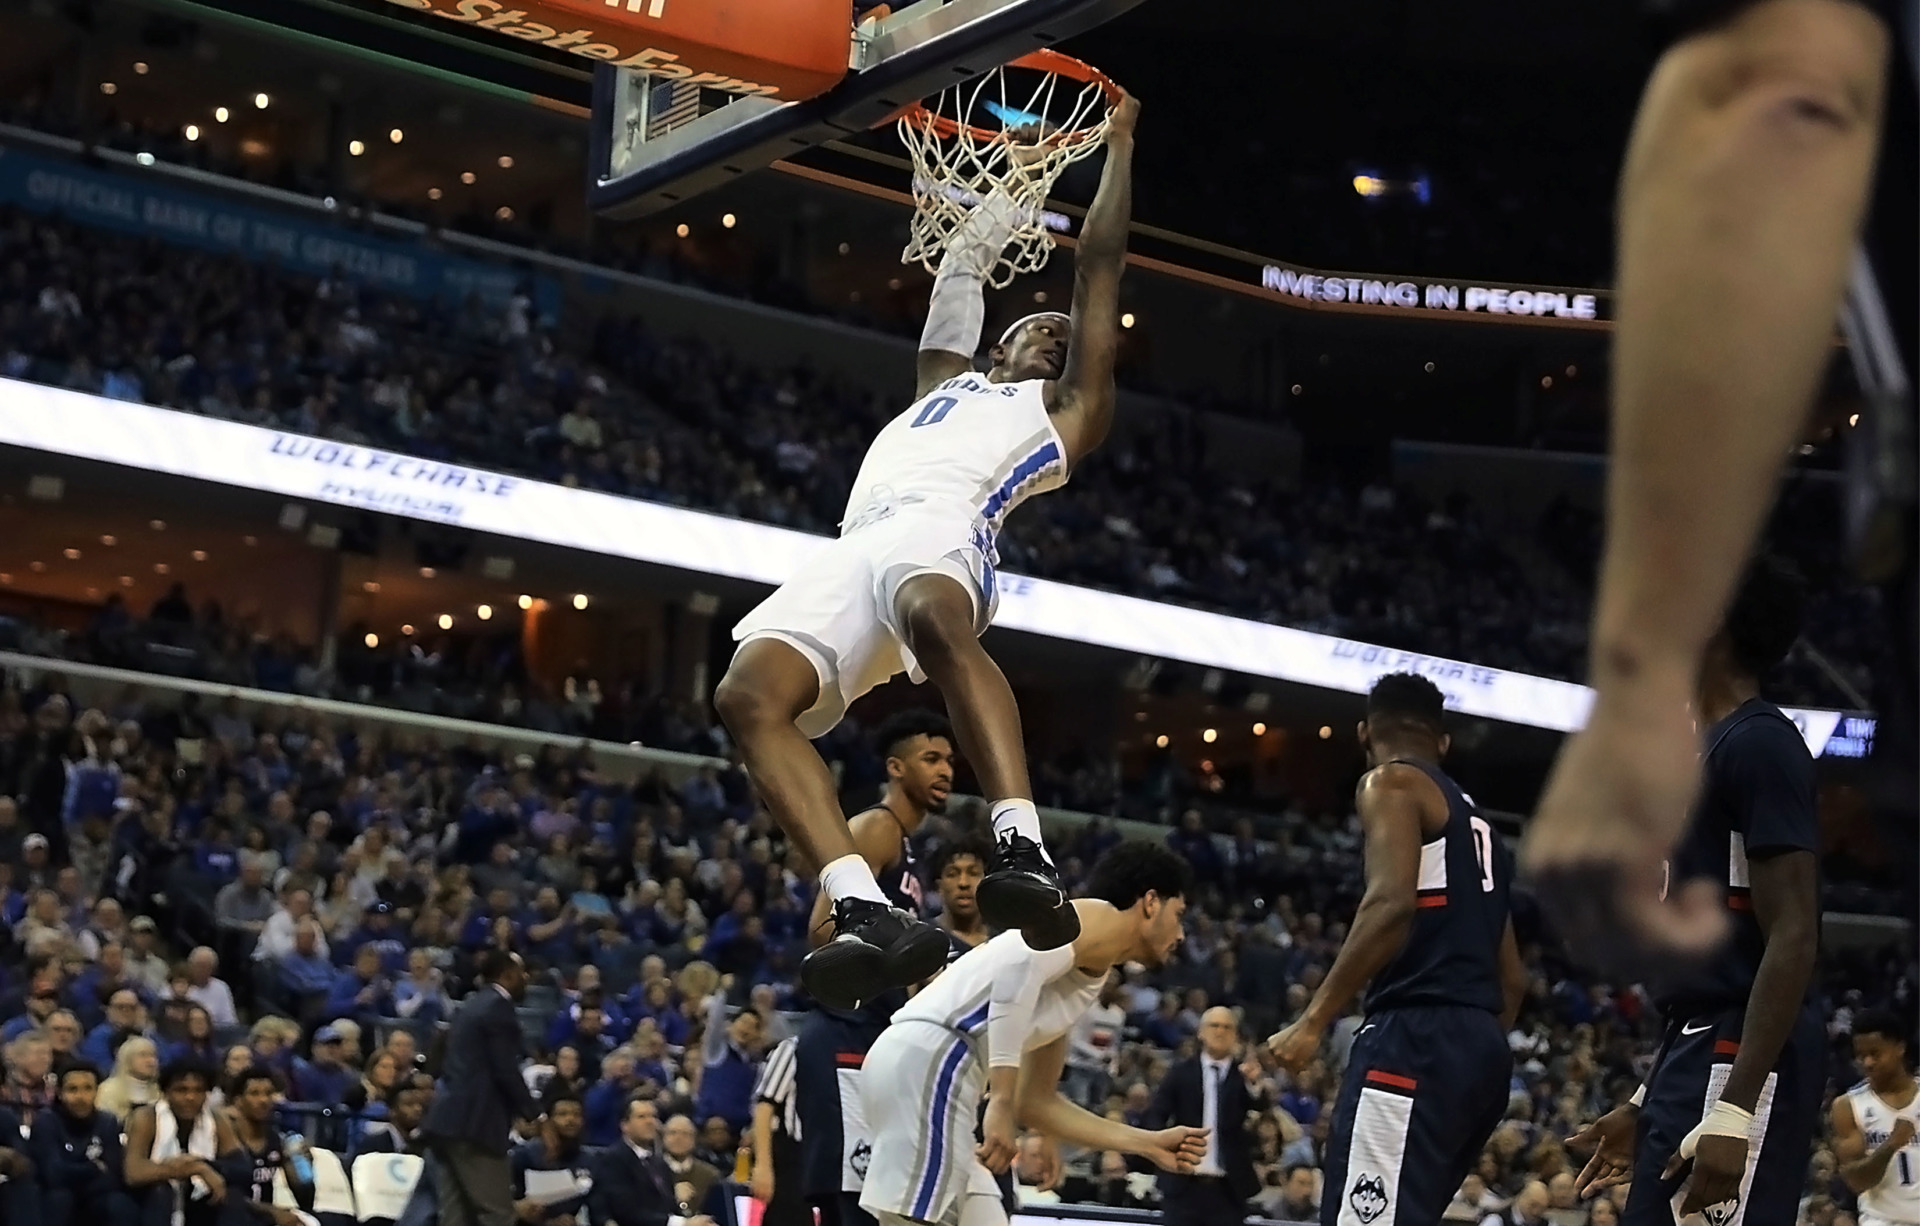 <strong>Kyvon Davenport brings the fans at FedExForum to their feet with a dunk in the first half against the Connecticut Huskies on Sunday, Feb. 10. The Tigers won, 78-71.</strong> (Patrick Lantrip/Daily Memphian)